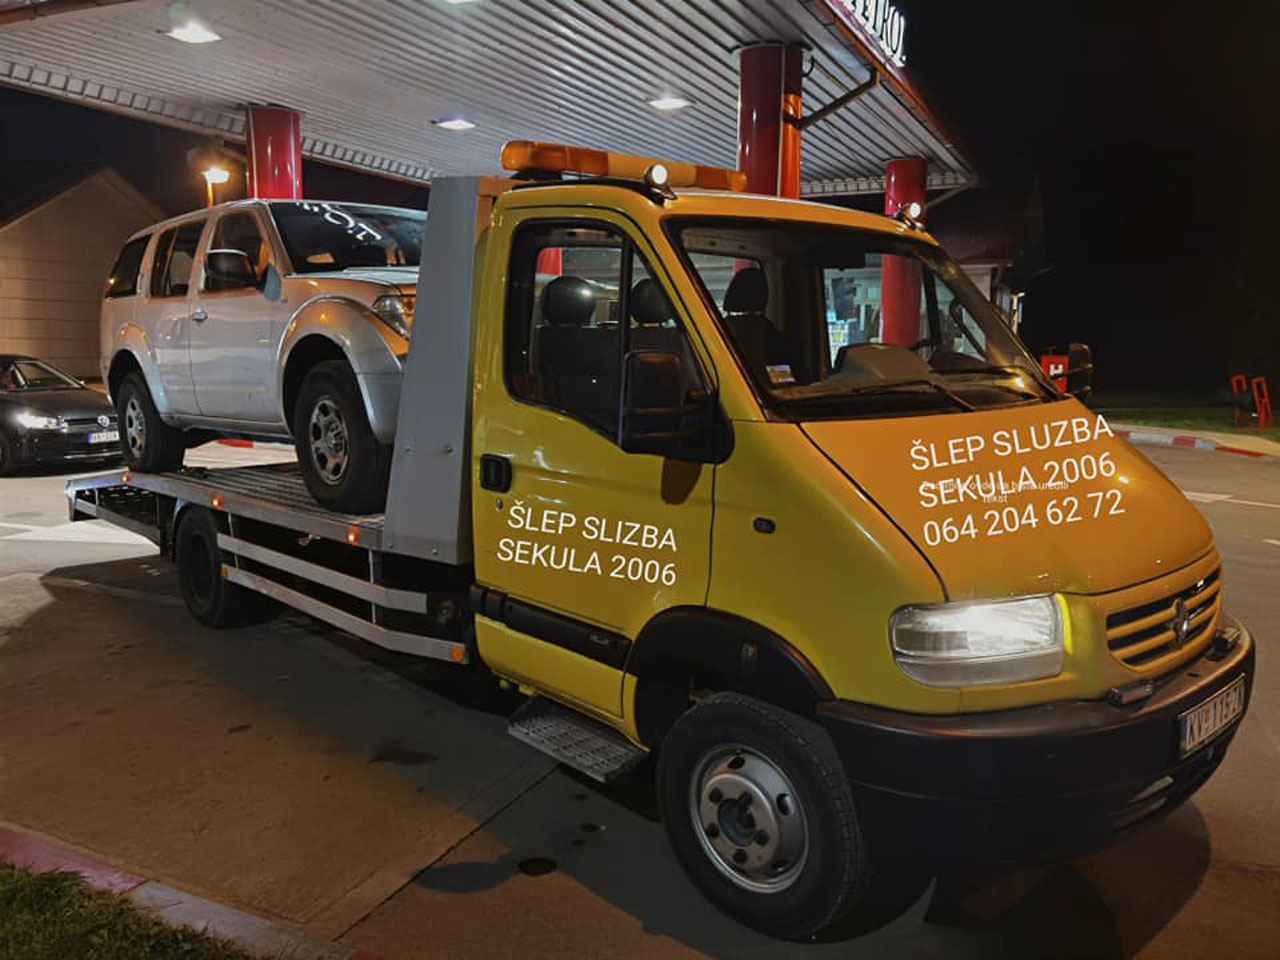 CAR AND TOWING SERVICE SEKULA 2006 Towing services Kraljevo - Photo 6